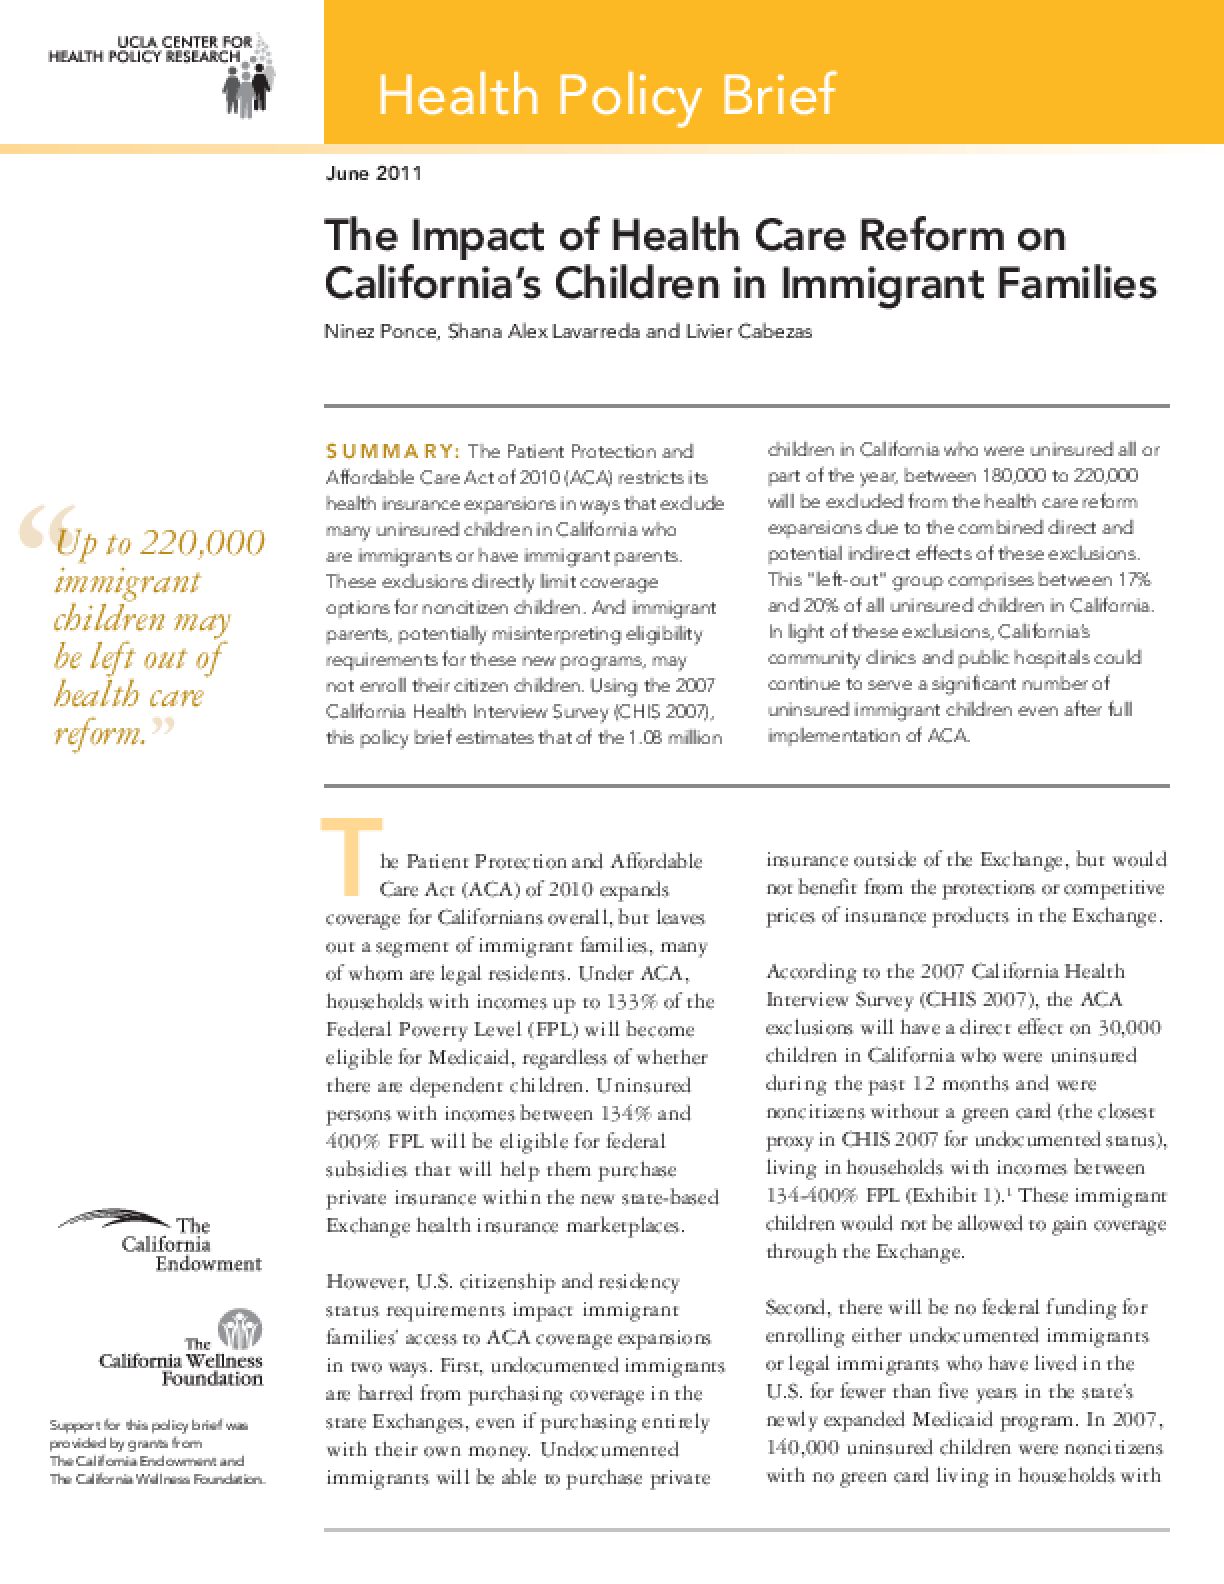 The Impact of Health Care Reform on California's Children in Immigrant Families